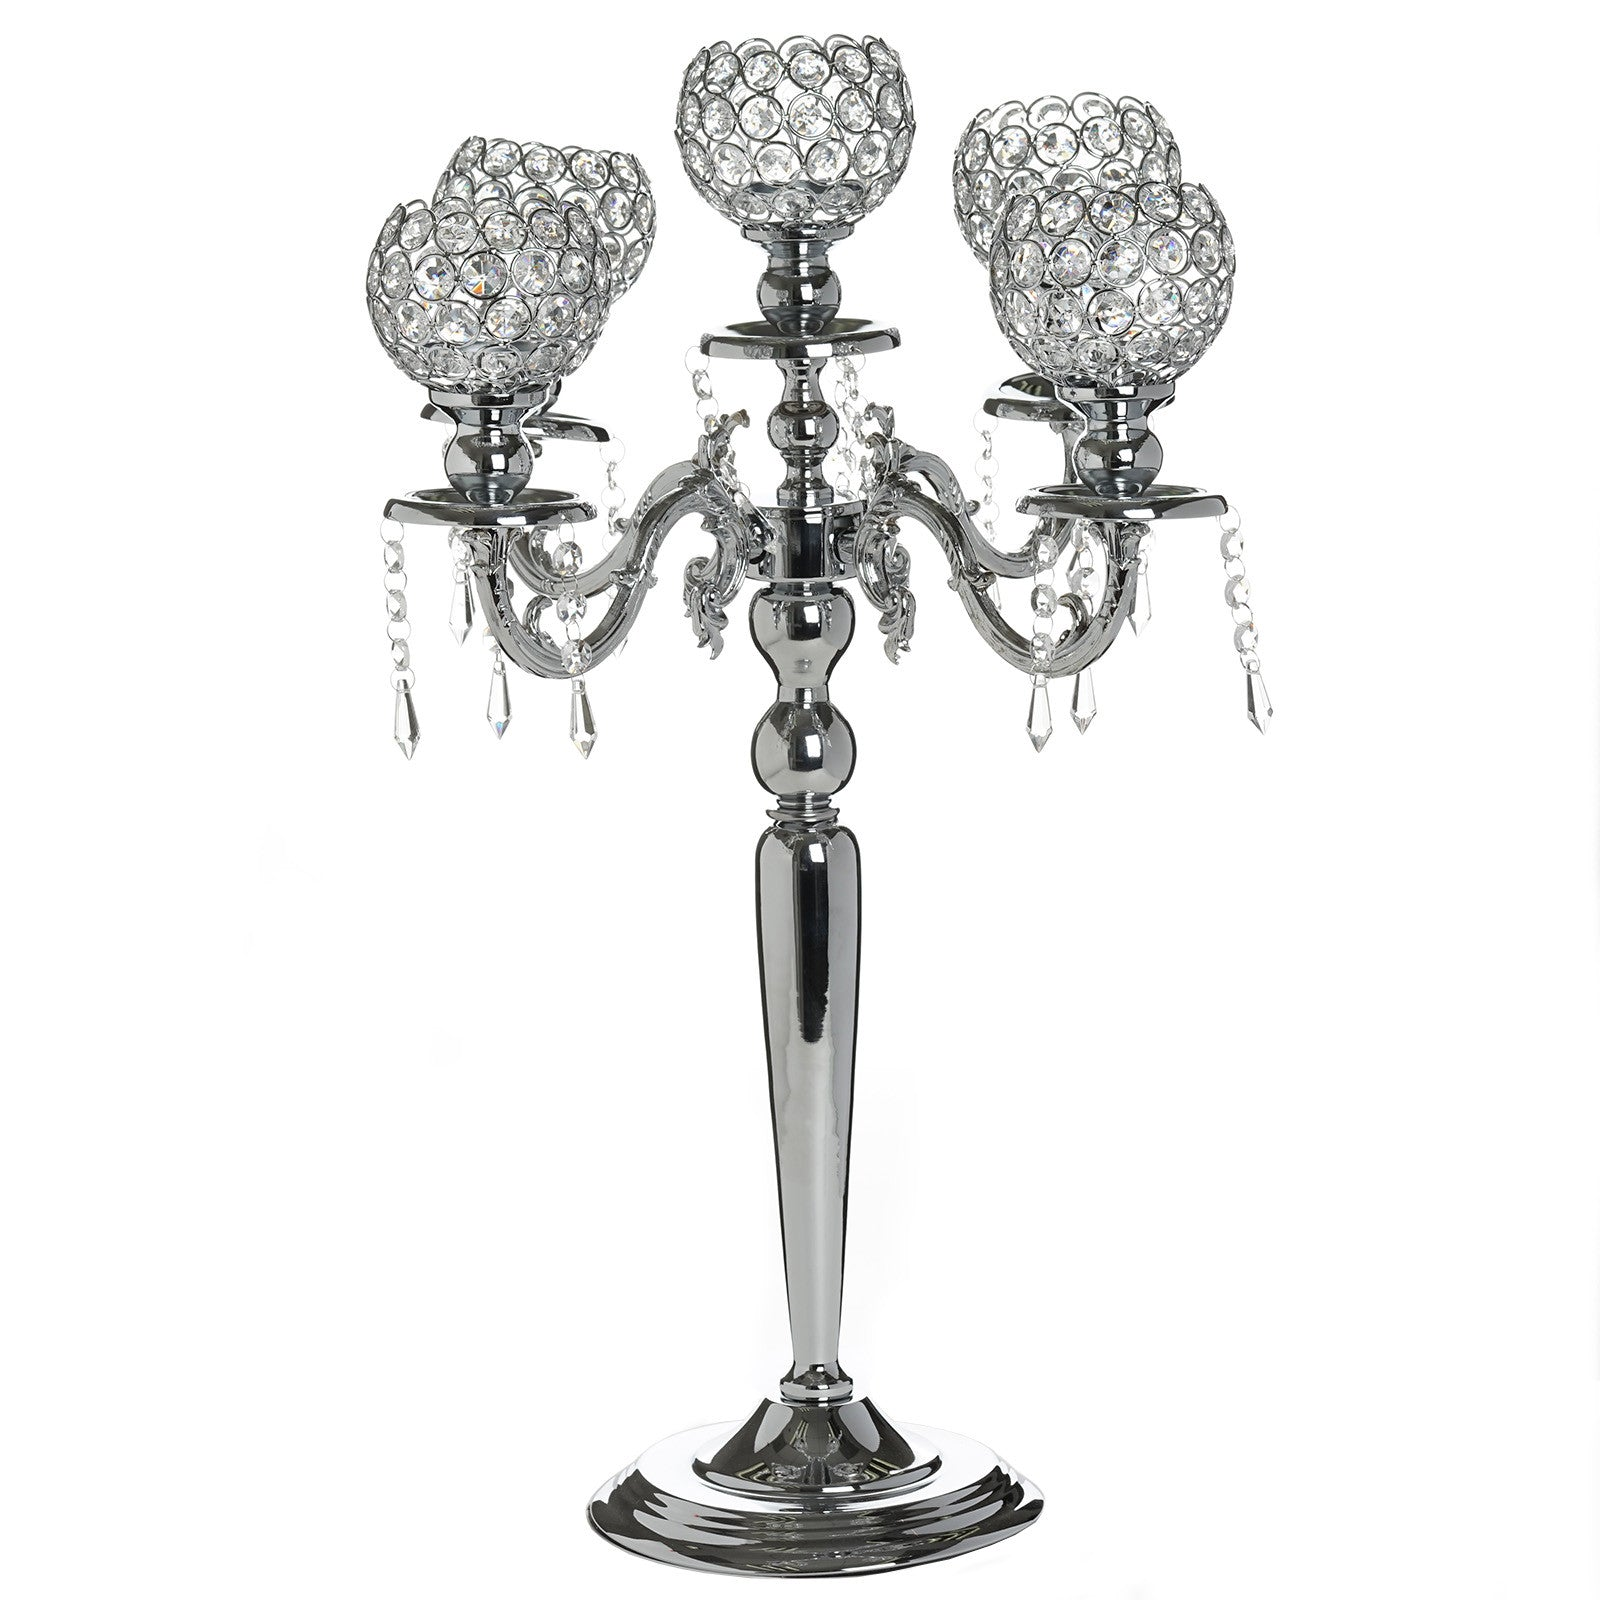 25 Tall Silver Crystal Votive Candelabra Chandelier Candle Holder Tabletop Centerpiece